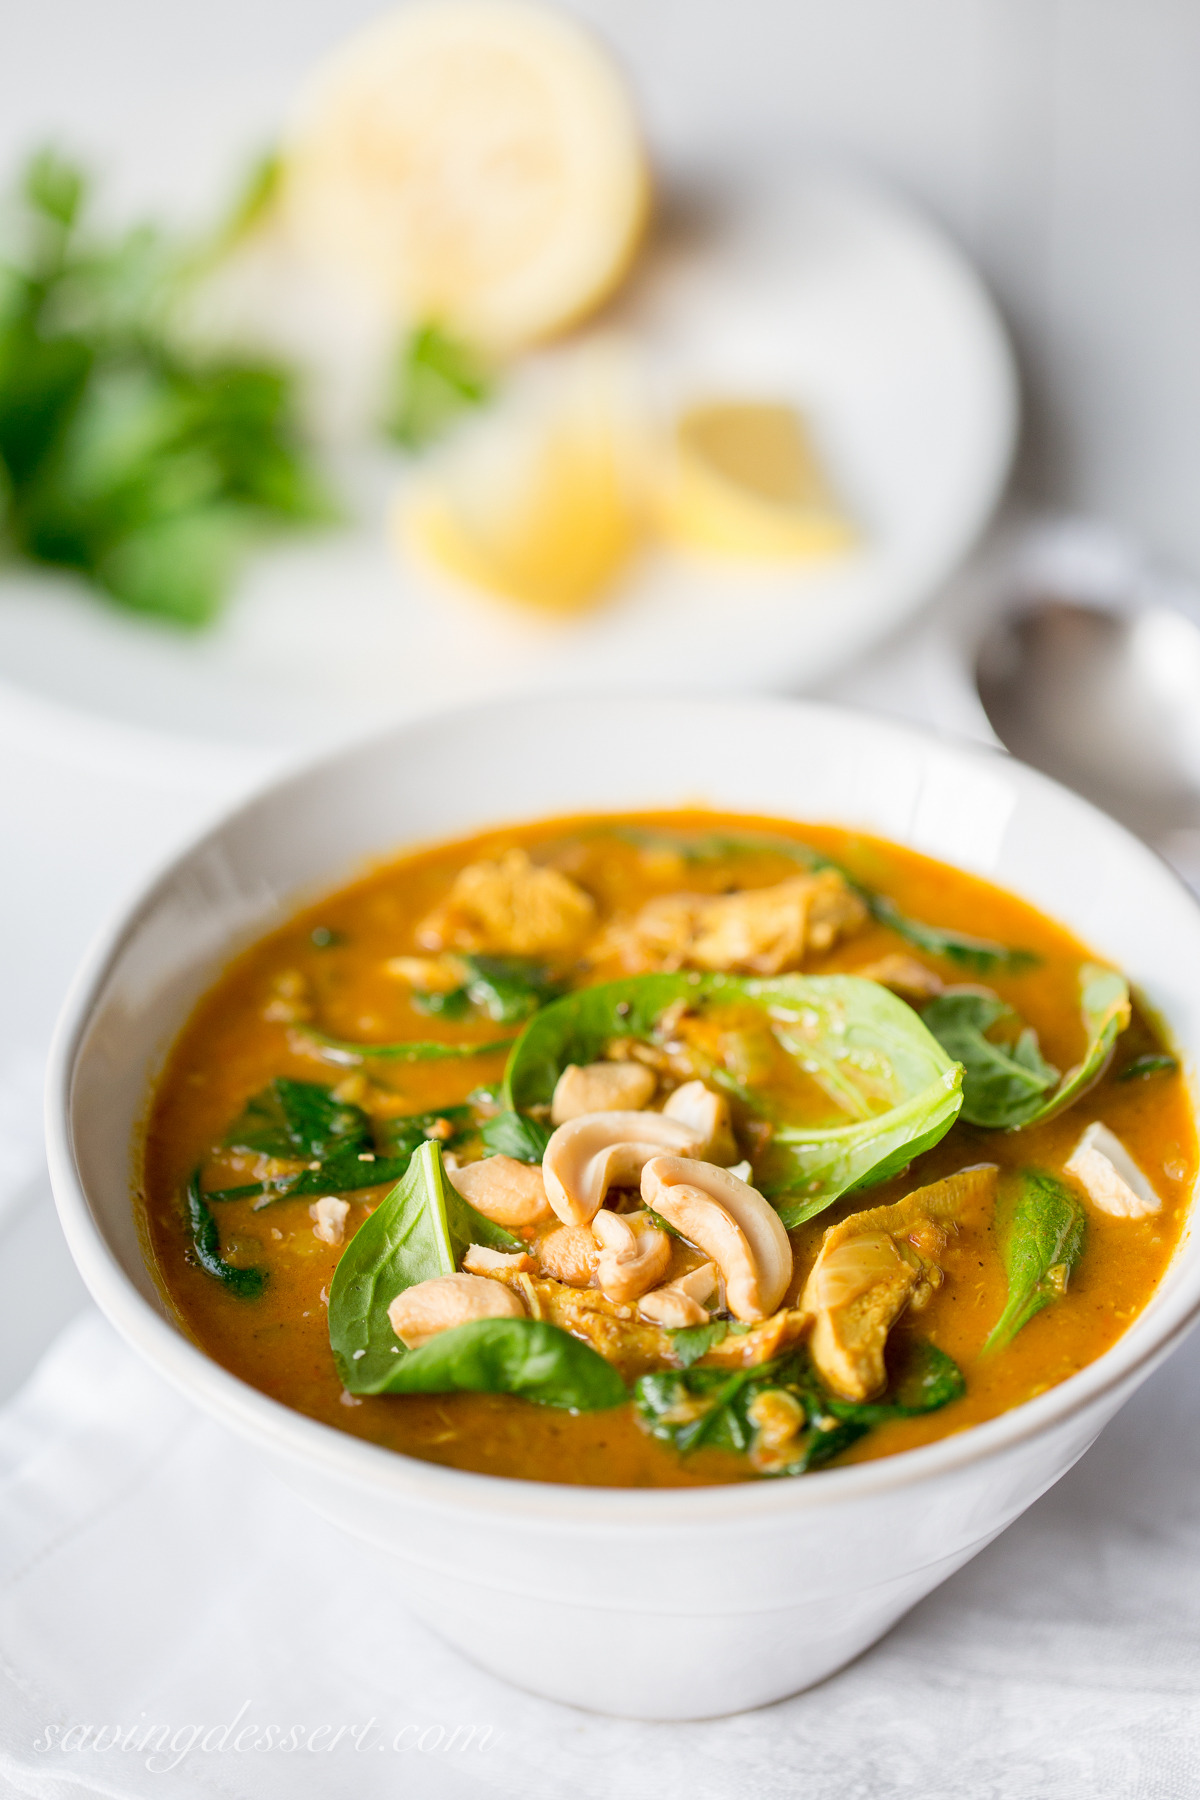 Creamy Coconut Chicken Soup with Spinach and Lentils